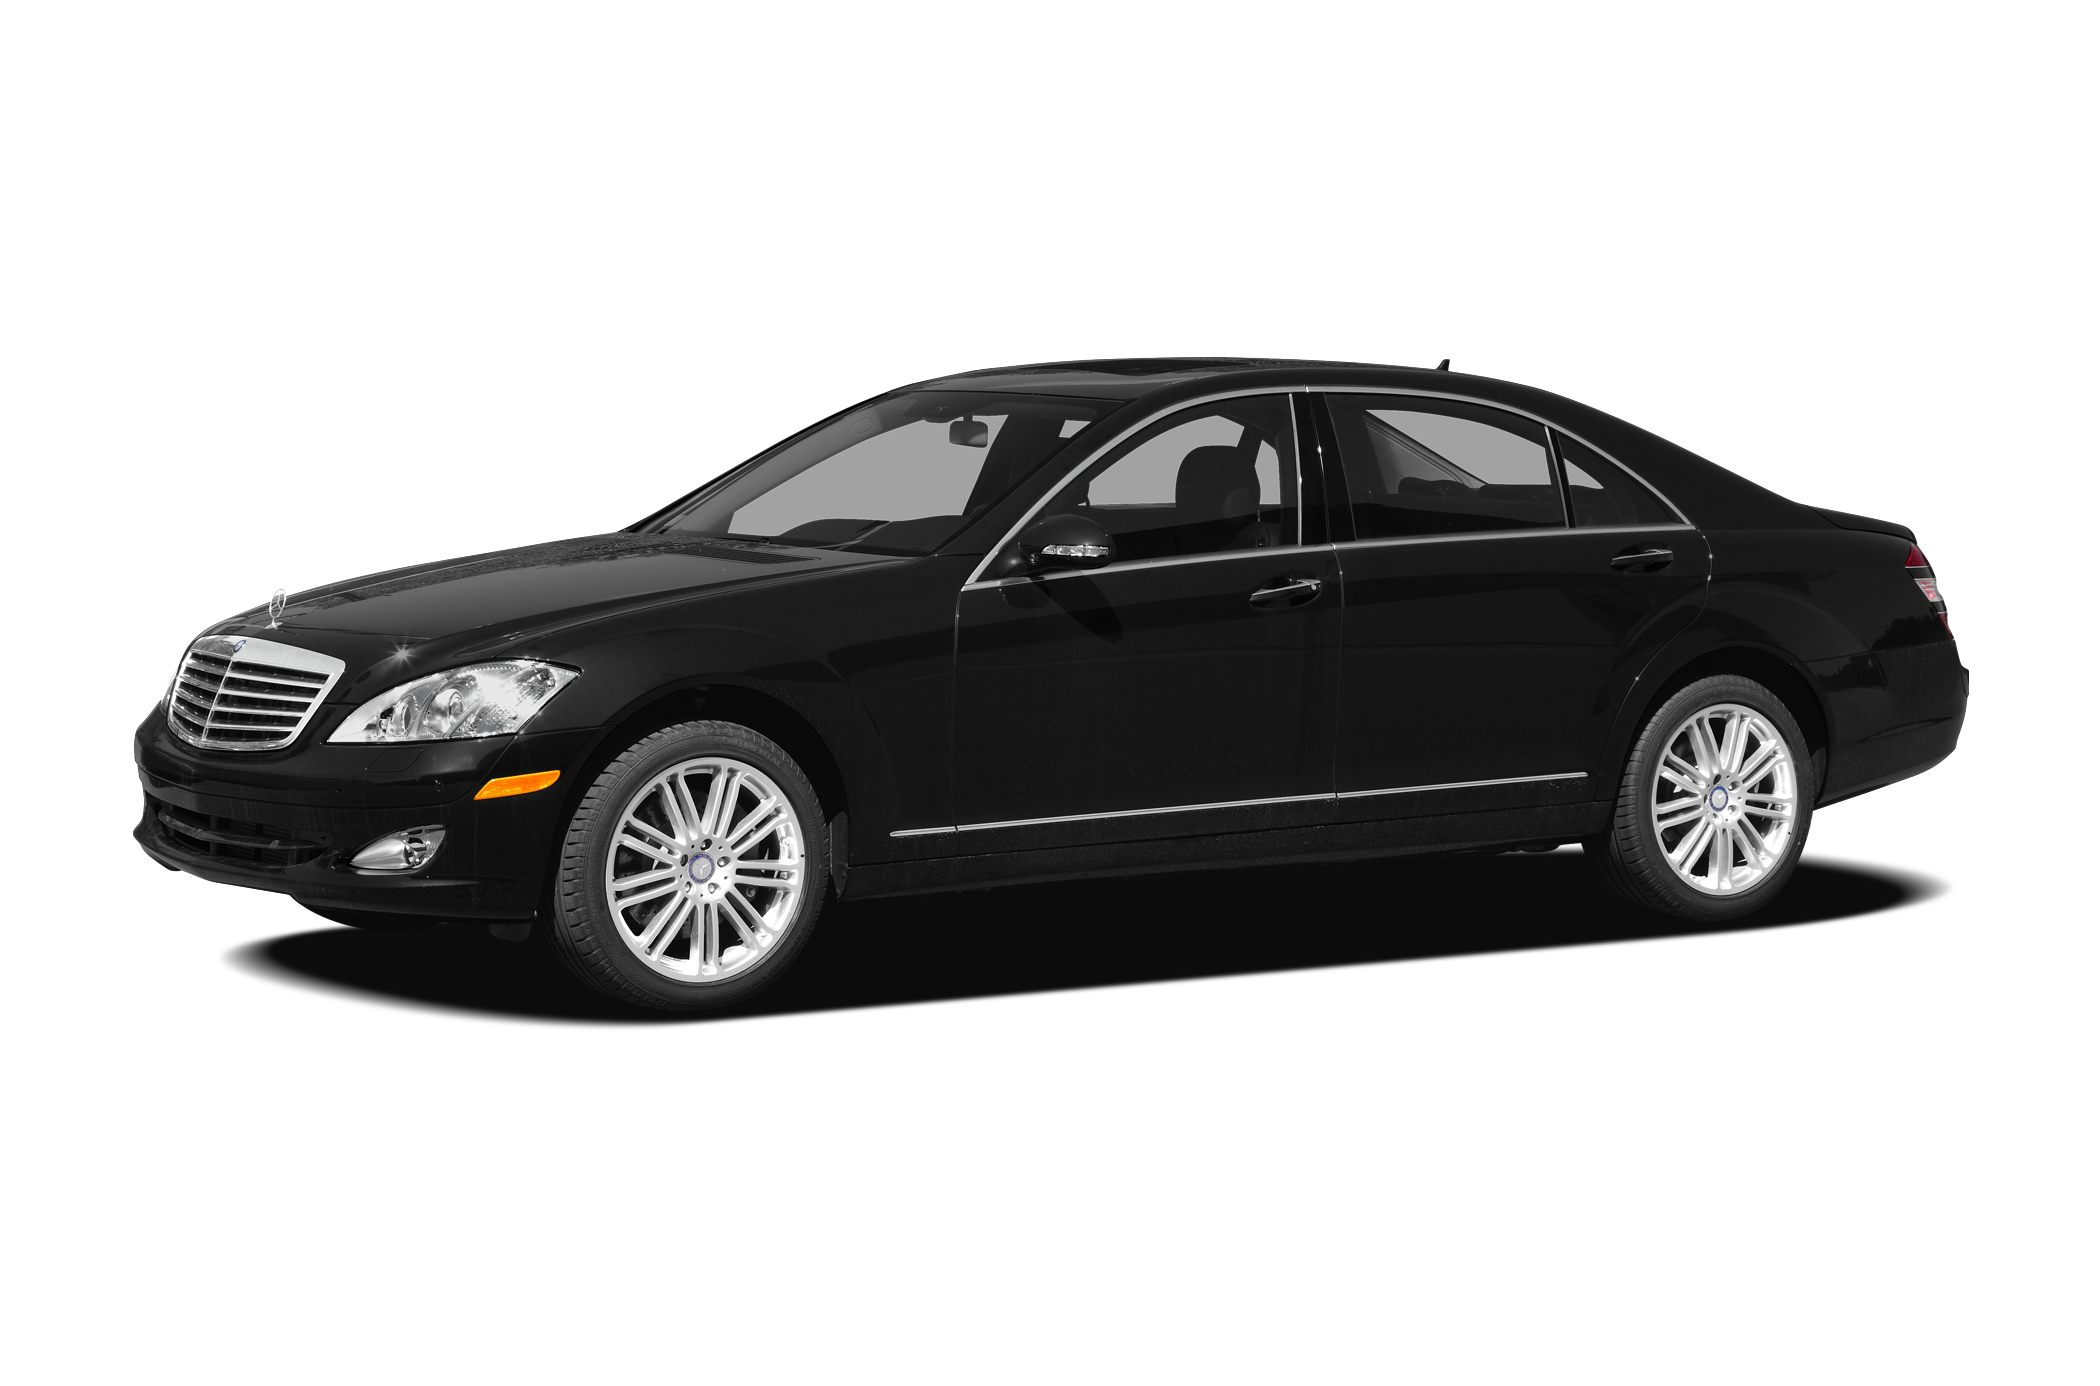 2009 Mercedes-Benz S-Class S550 Sedan for sale in Douglasville for $32,985 with 75,543 miles.